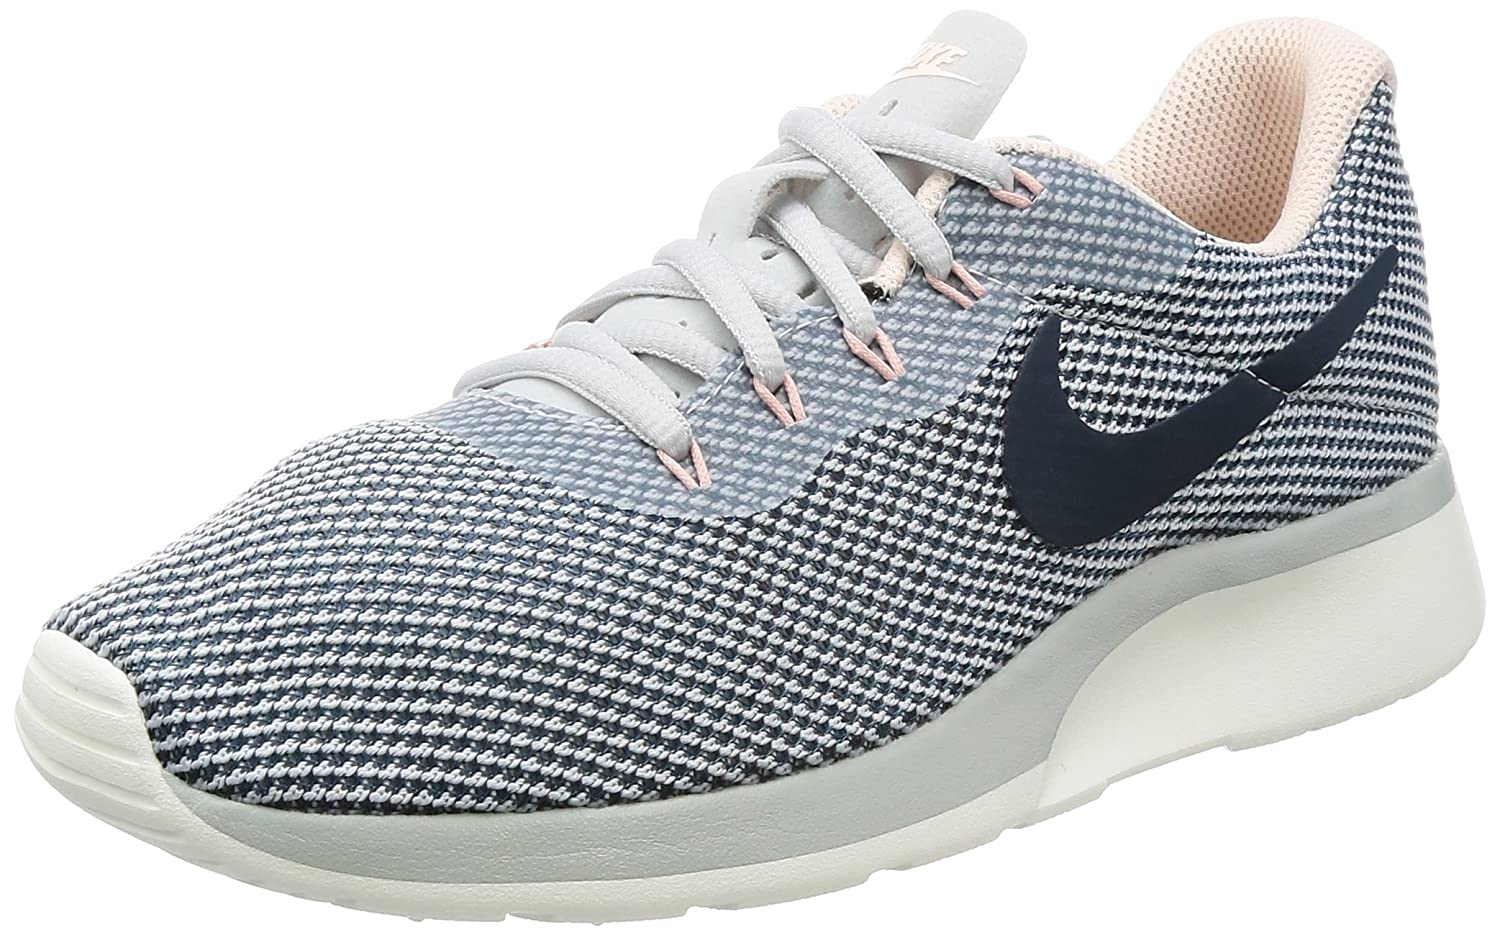 preview of buying now great quality Nike Women's Tanjun Racer Running Shoe Pure Platinum/Armory Navy-Armory  Blue 10